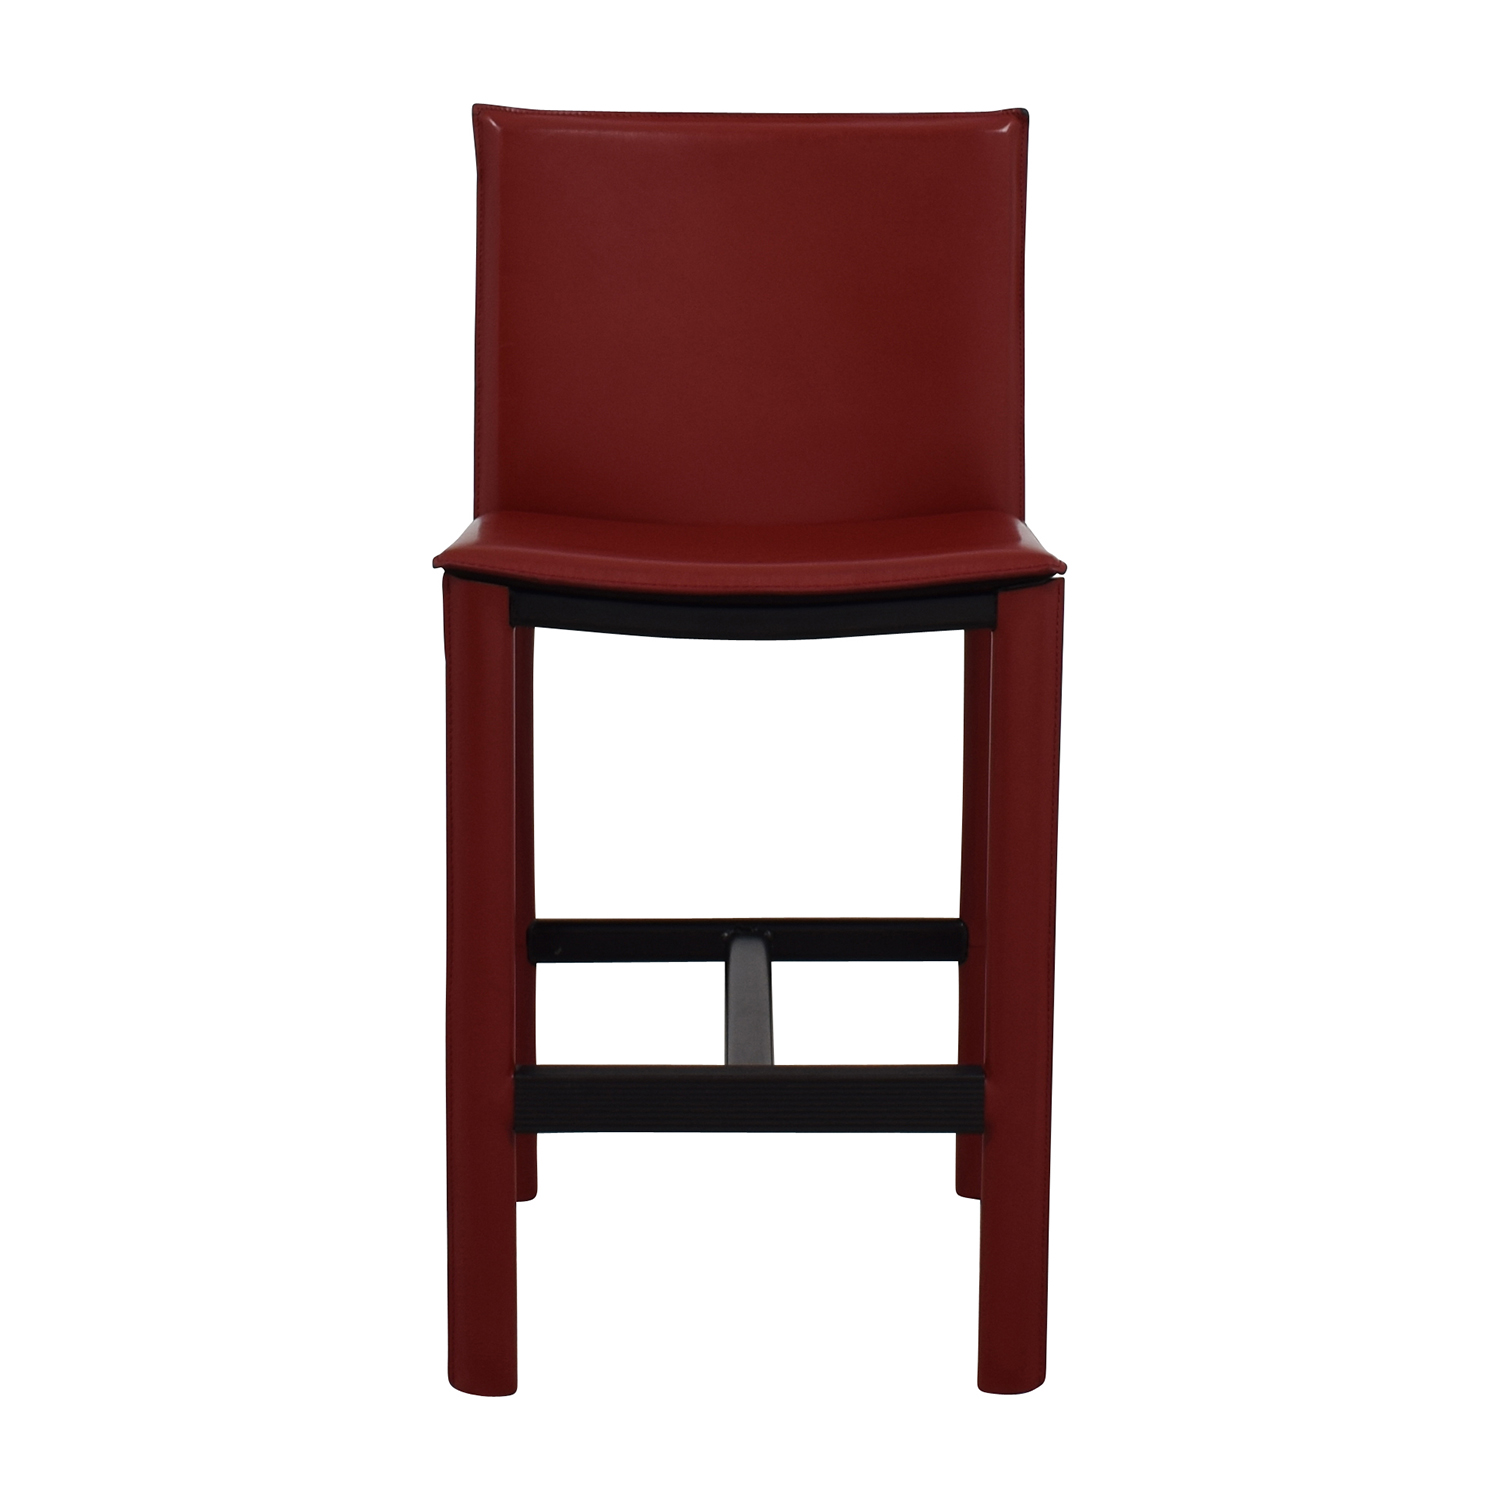 Room & Board Room & Board Sava Bar Stool in Red Leather used